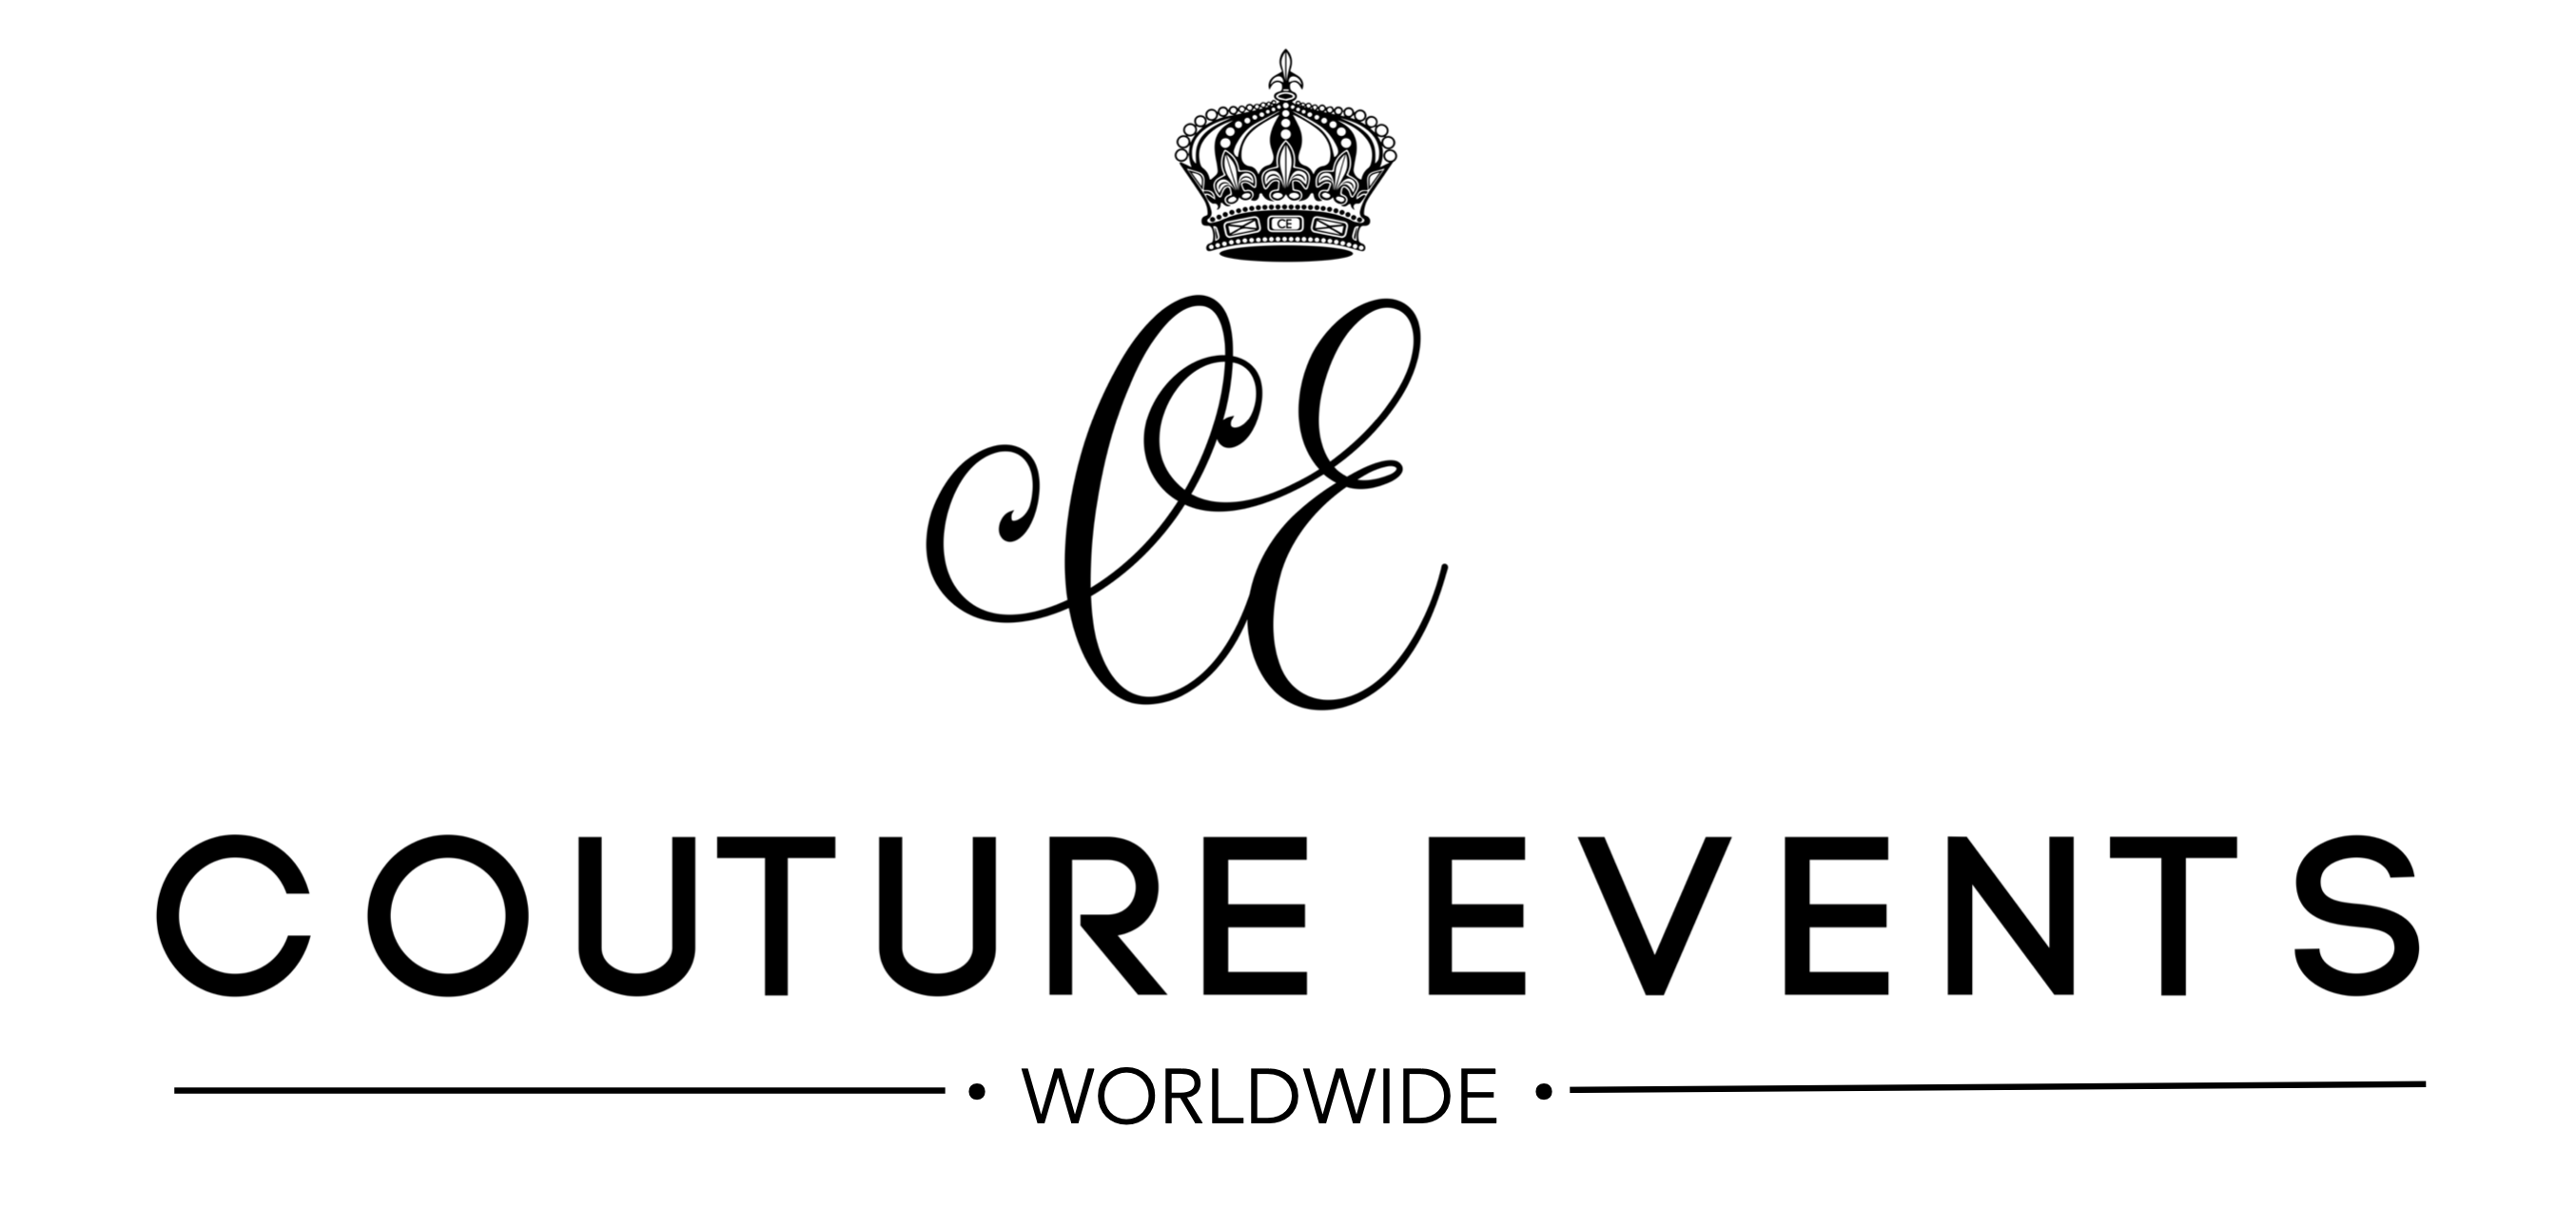 Couture Events Worldwide